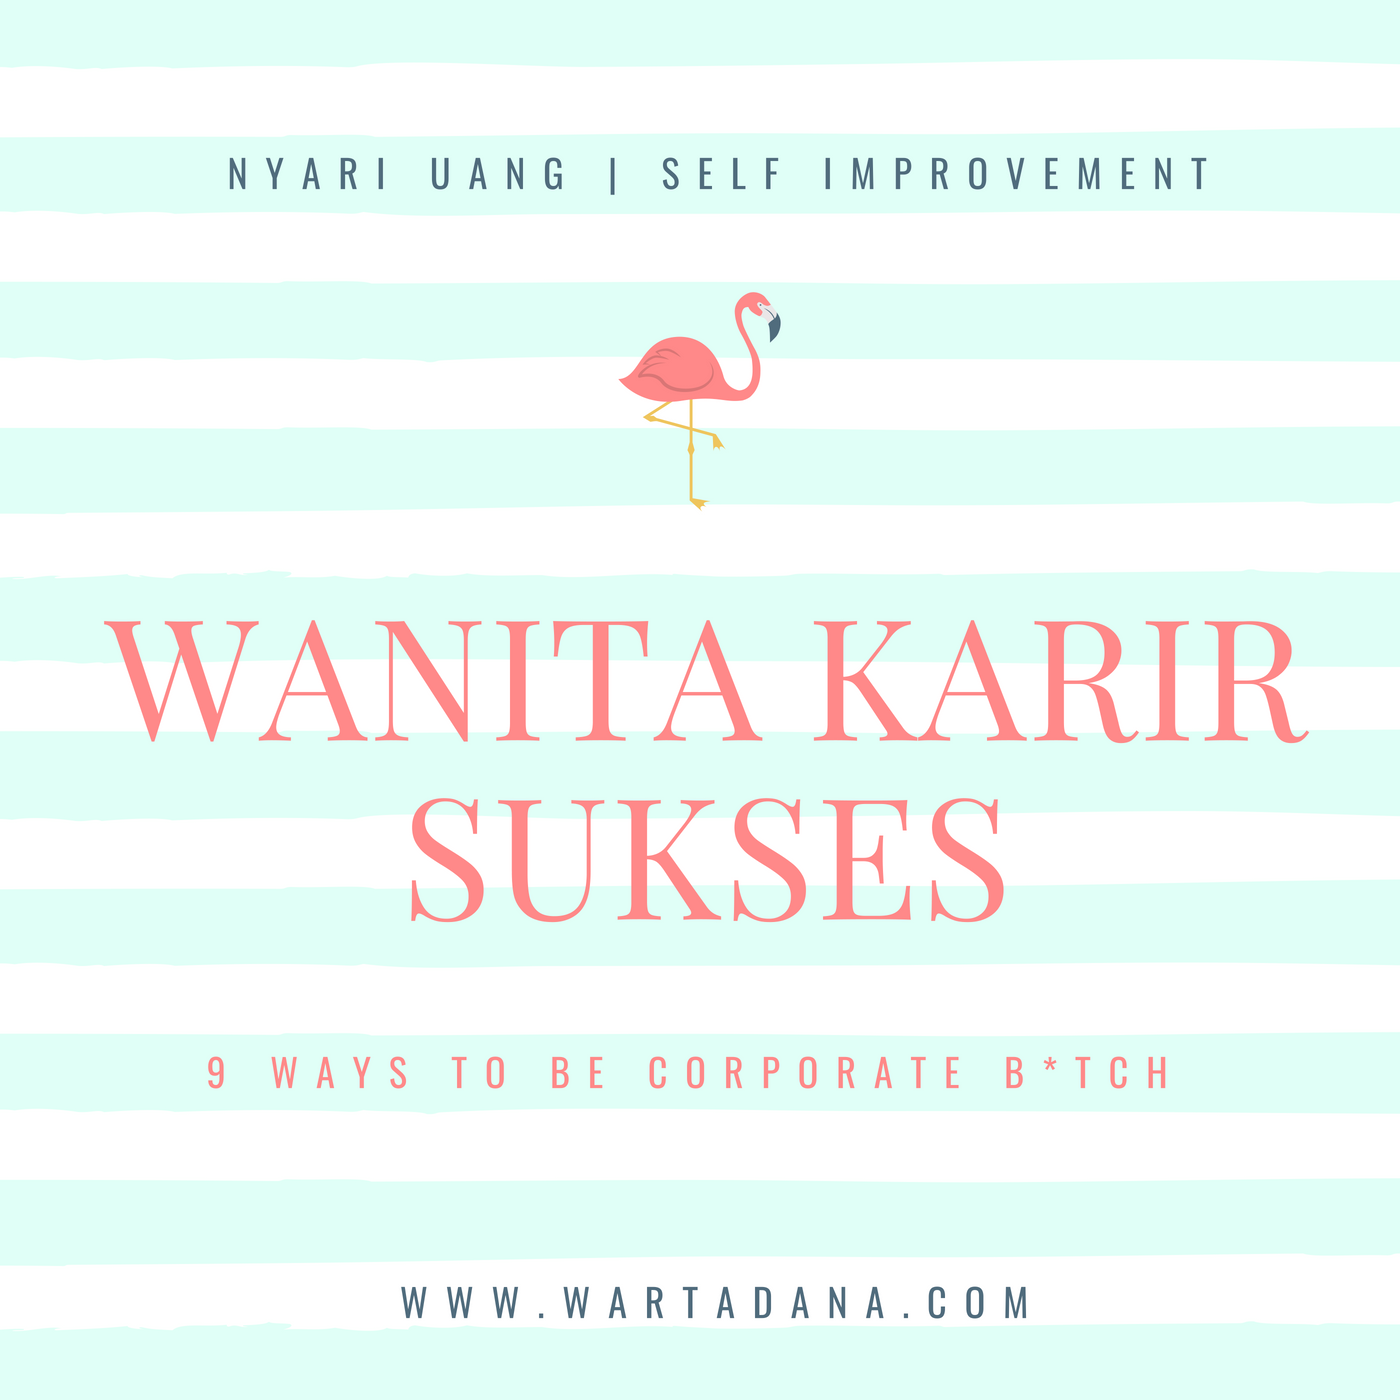 WANITA KARIR SUKSES - 9 WAYS TO BE CORPORATE B*TCH